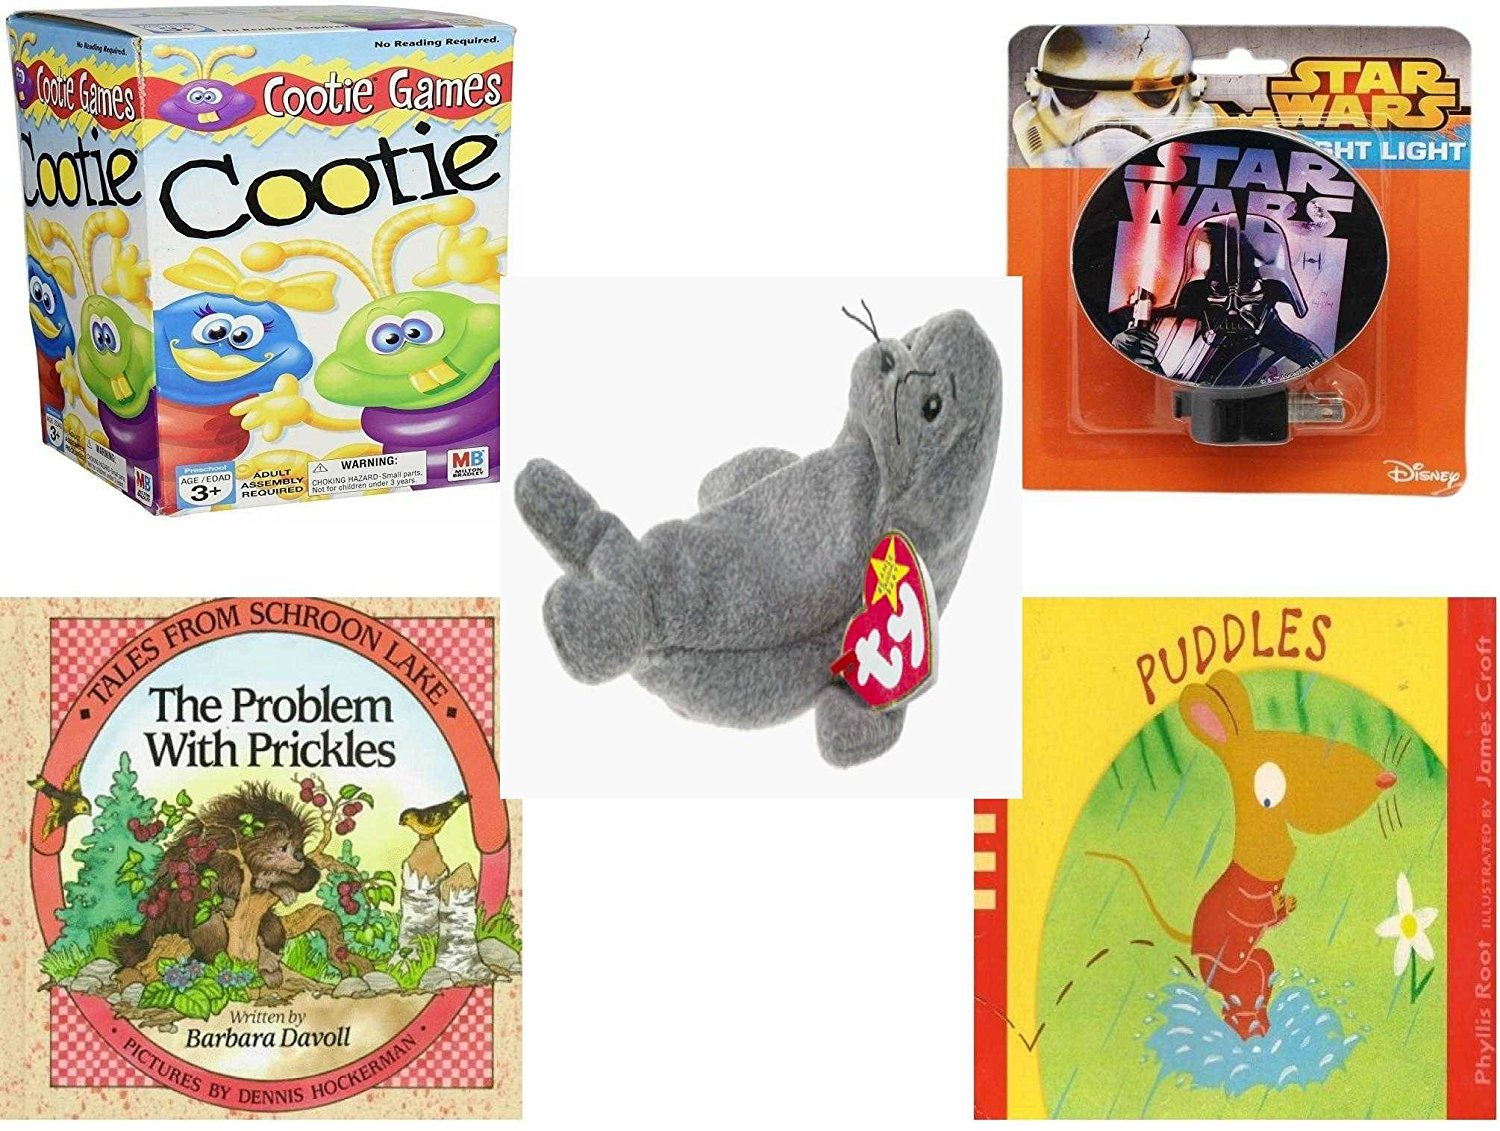 Children's Gift Bundle - Ages 3-5 [5 Piece] - Cootie Game - Star Wars Darth Vader Night Light - Ty Beanie Baby - Slippery the Seal - Tales from Schroon Lake: The Problem with Prickles Hardcover Book